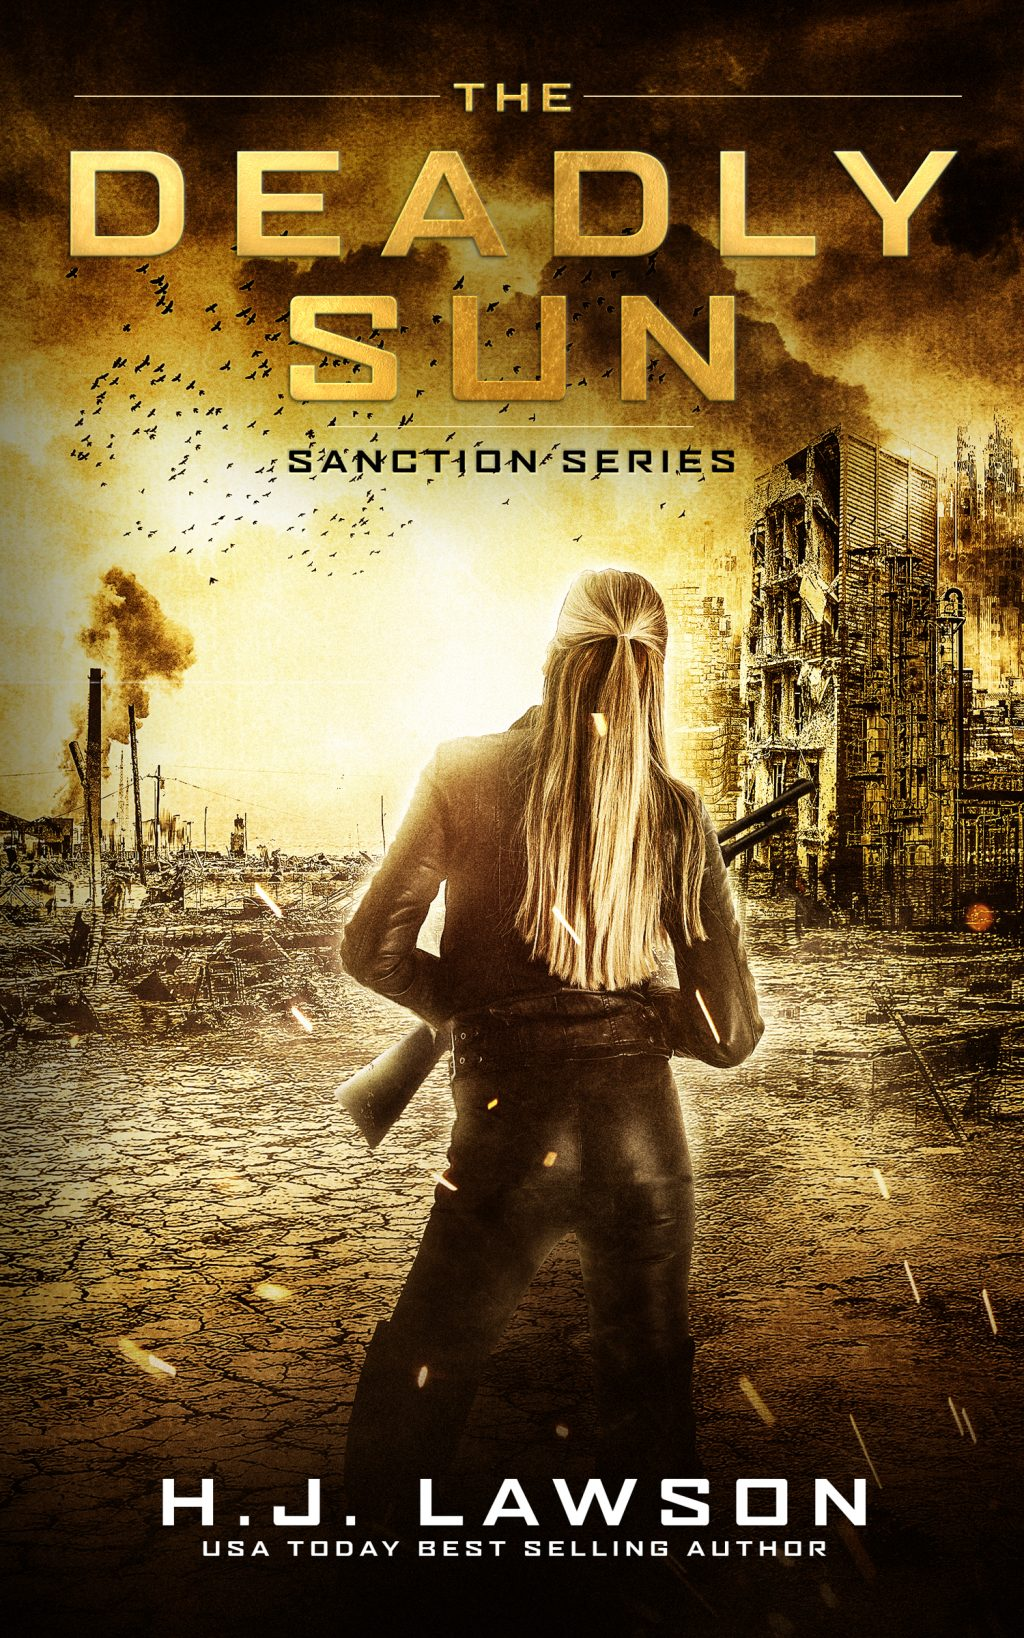 The Deadly Sun (The Sanction Series #1) by H.J. Lawson